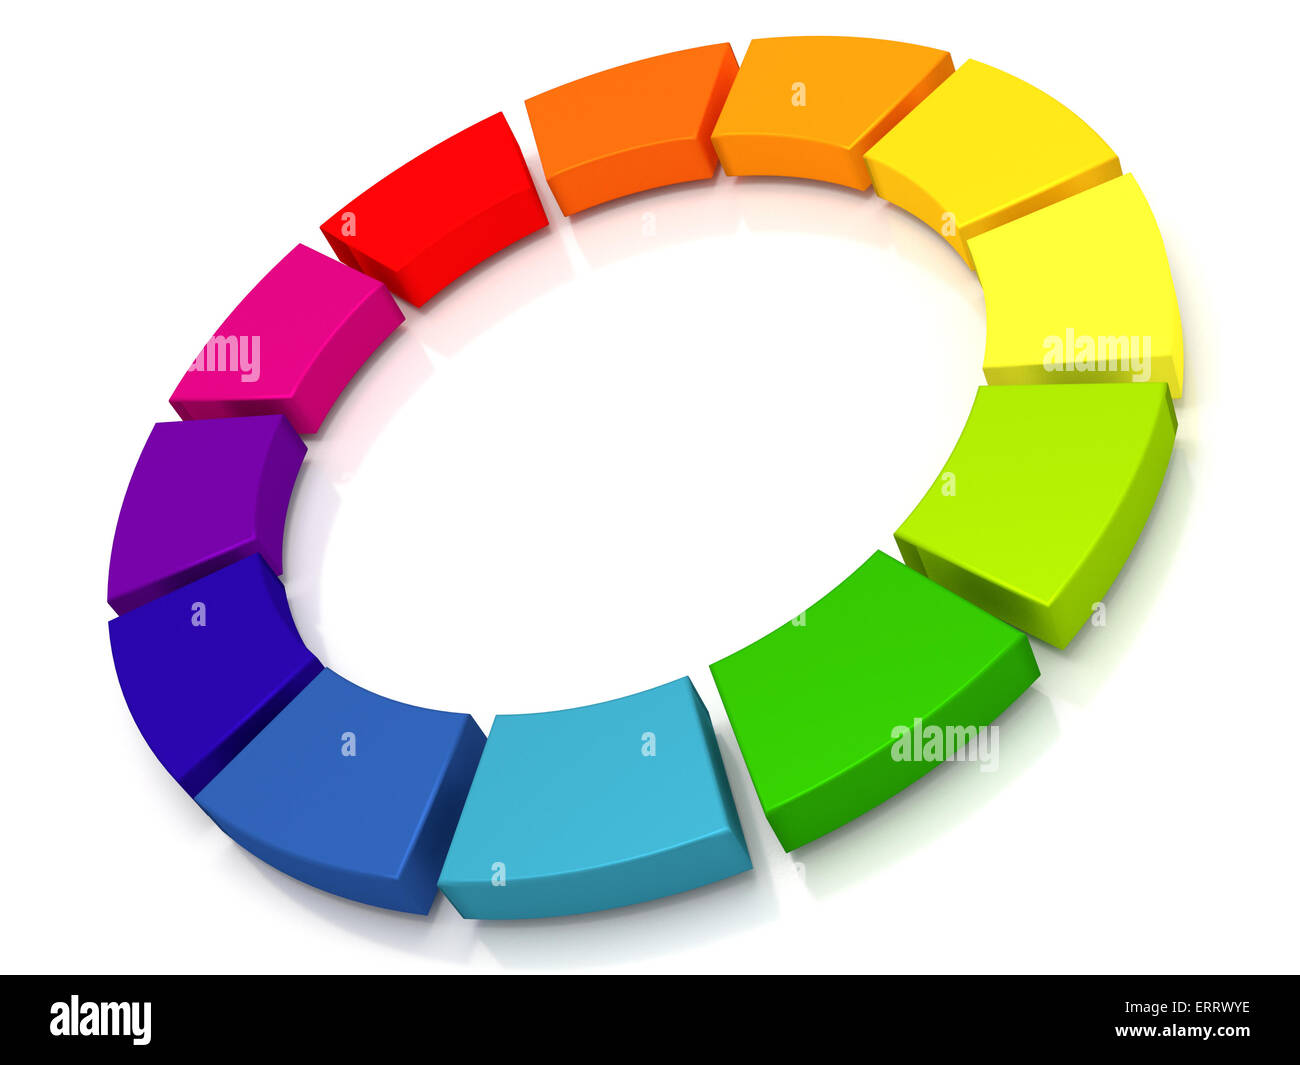 A circle that can be used to illustrate continuous delivery and continuous integration. - Stock Image